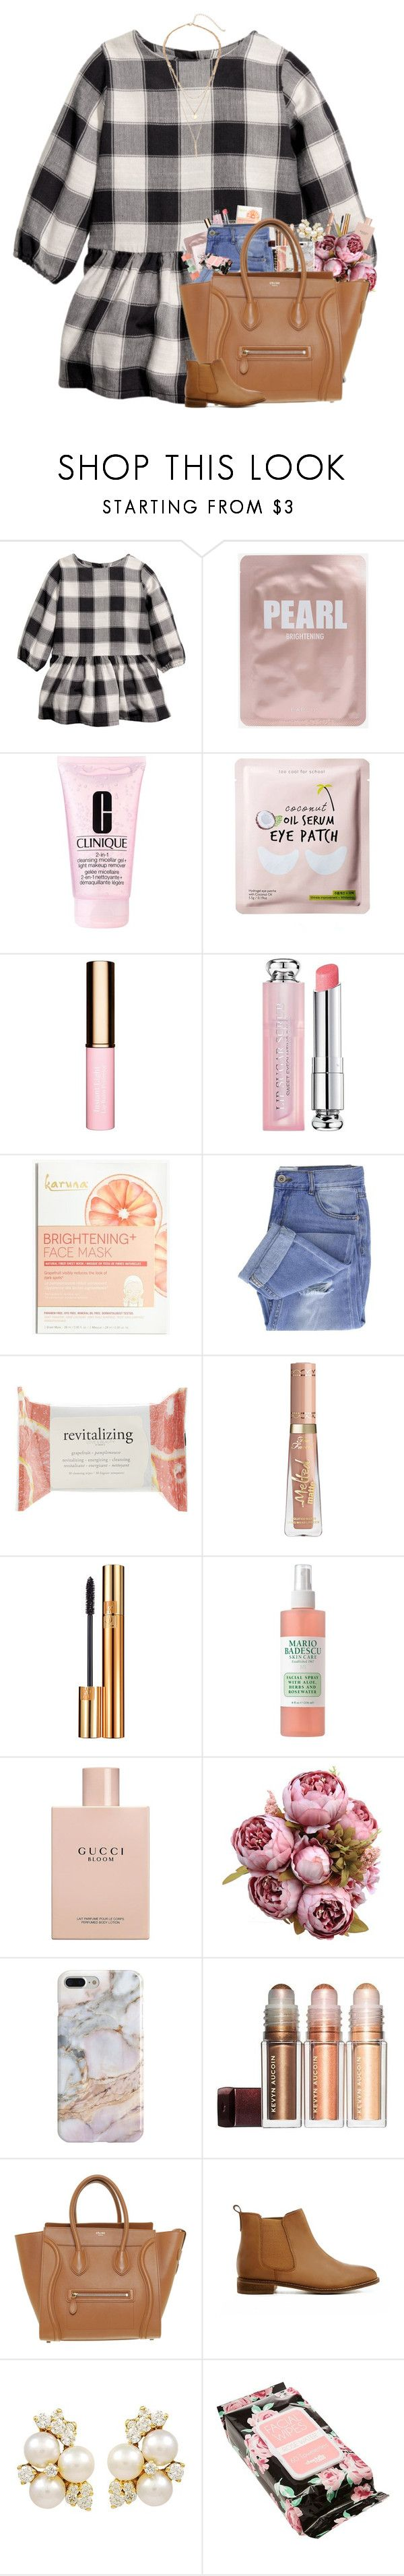 """""""OOTD: Tuesday"""" by preppyandperfect ❤ liked on Polyvore featuring Clinique, Clarins, Christian Dior, Madewell, Taya, Forever 21, Yves Saint Laurent, Mario Badescu Skin Care, Gucci and Recover"""